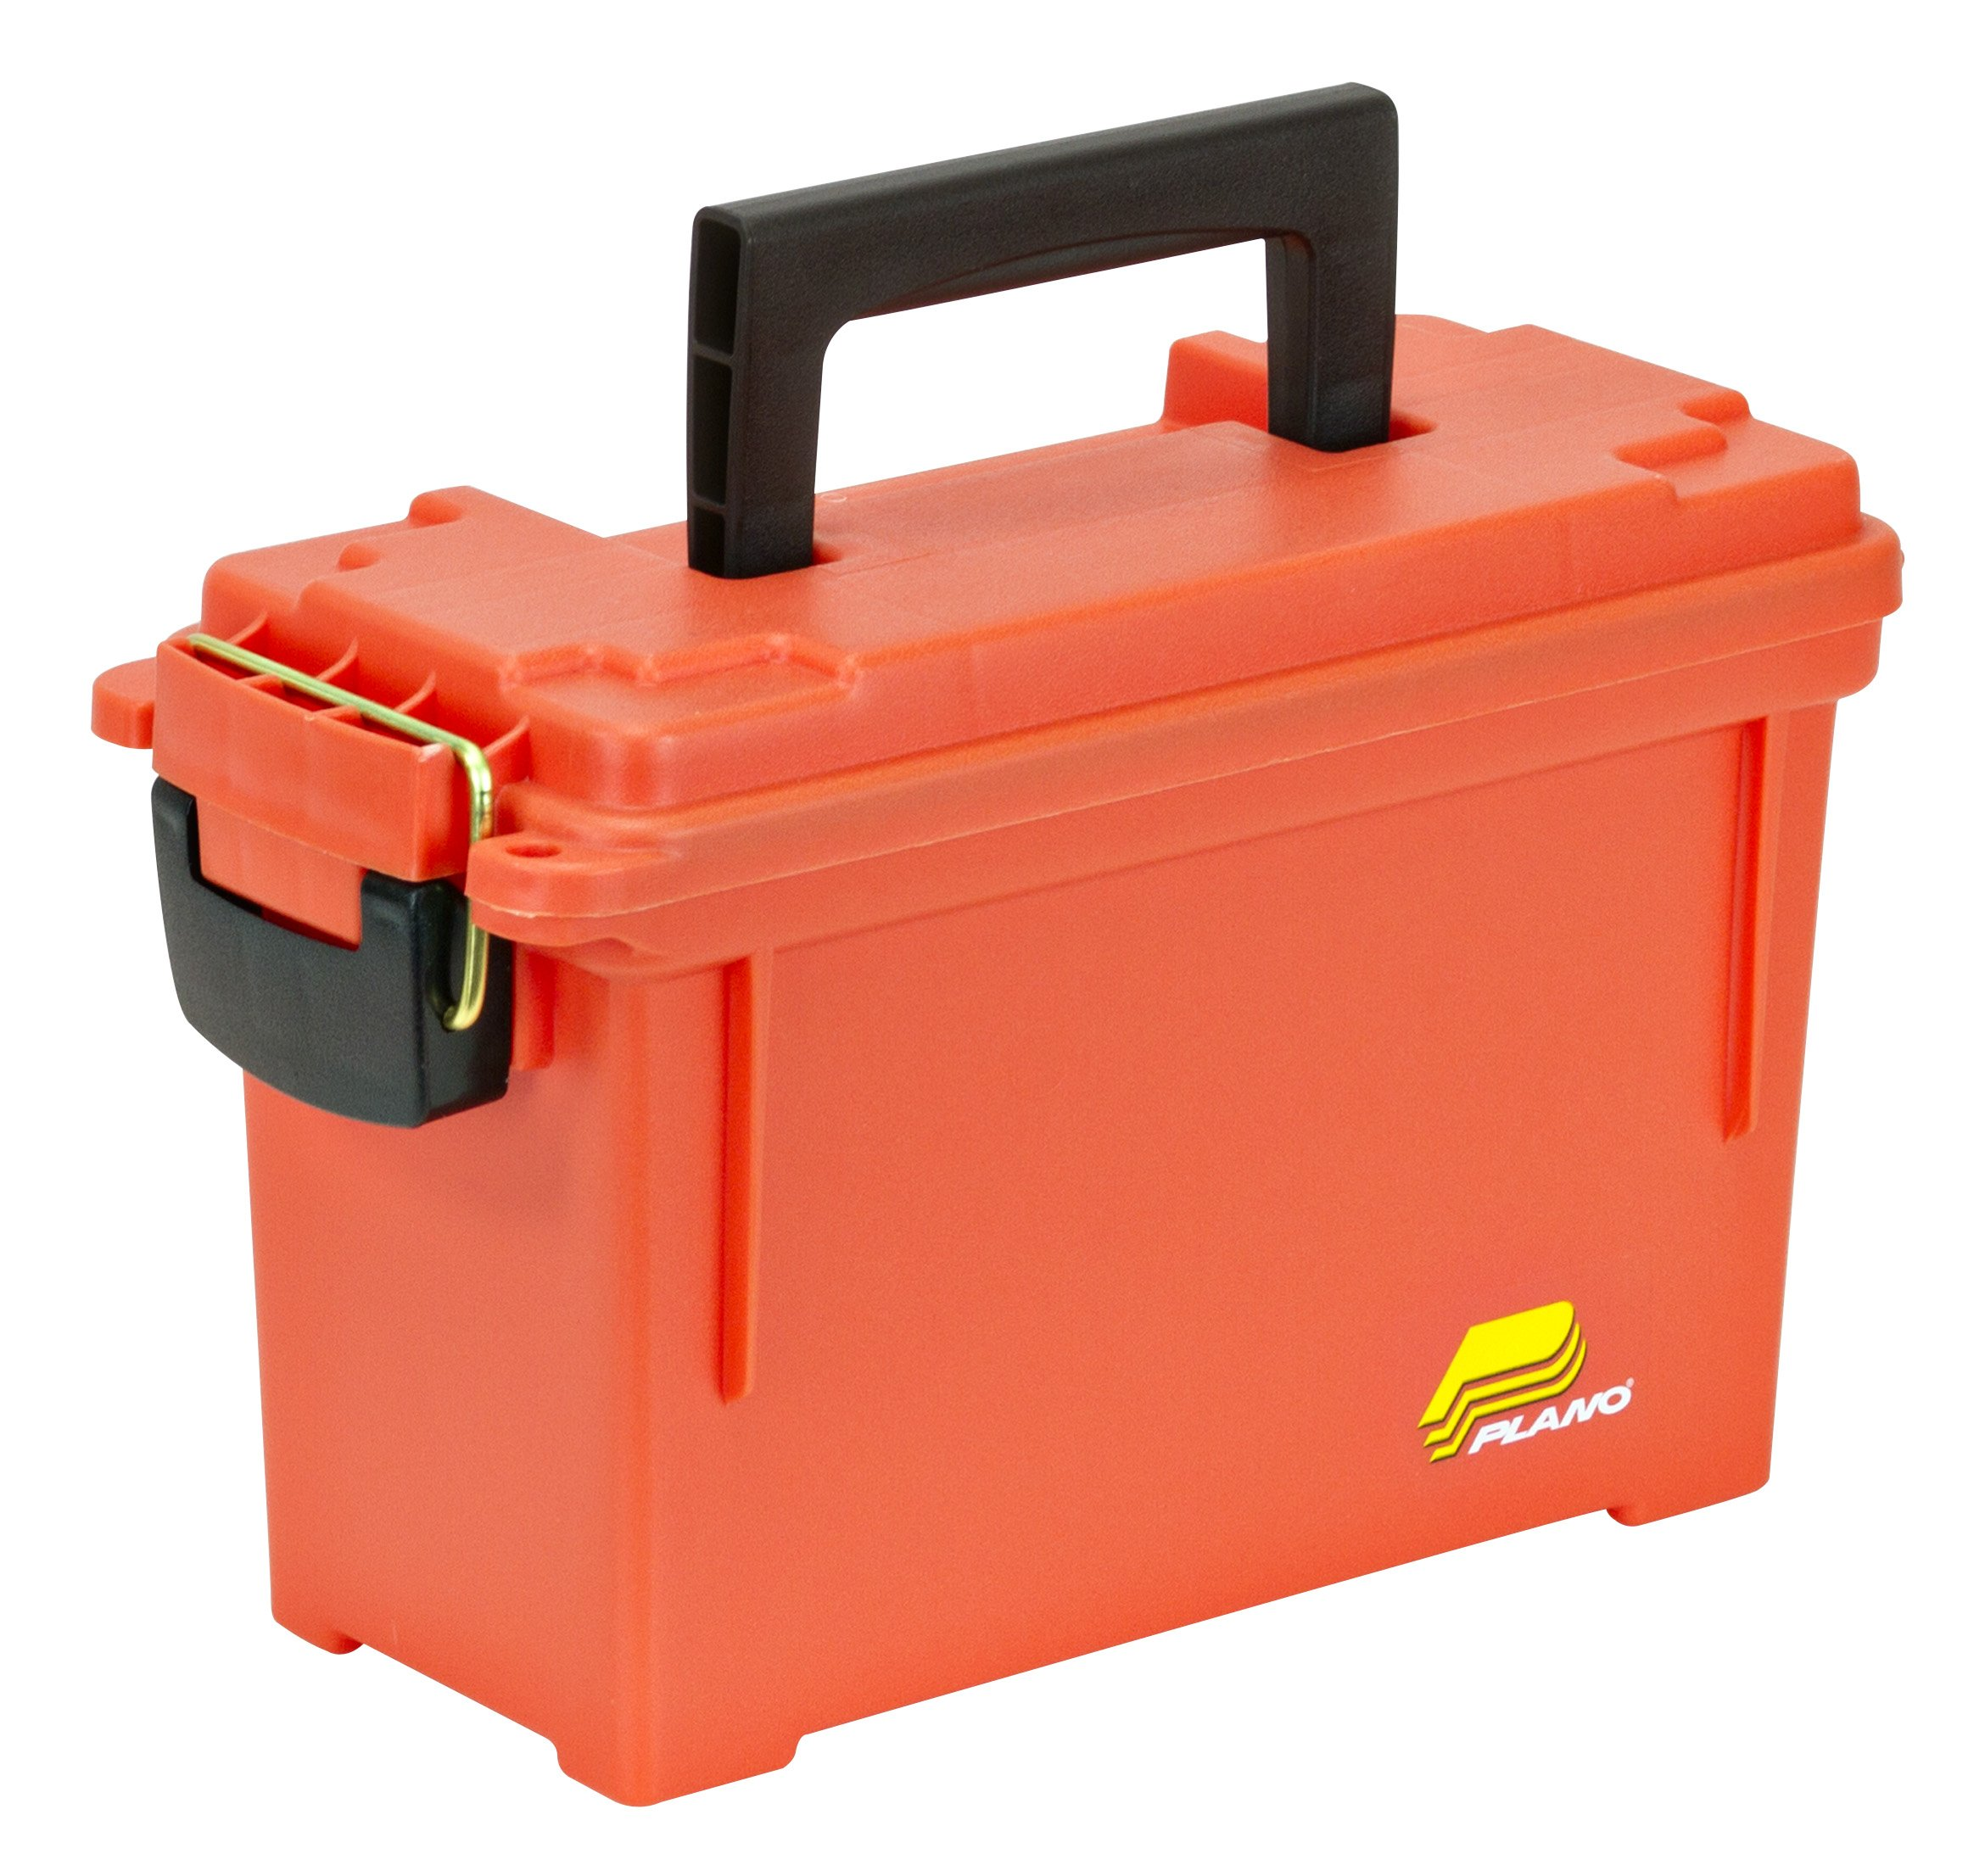 Marine boat box waterproof storage emergency tool kit for Boat mailbox